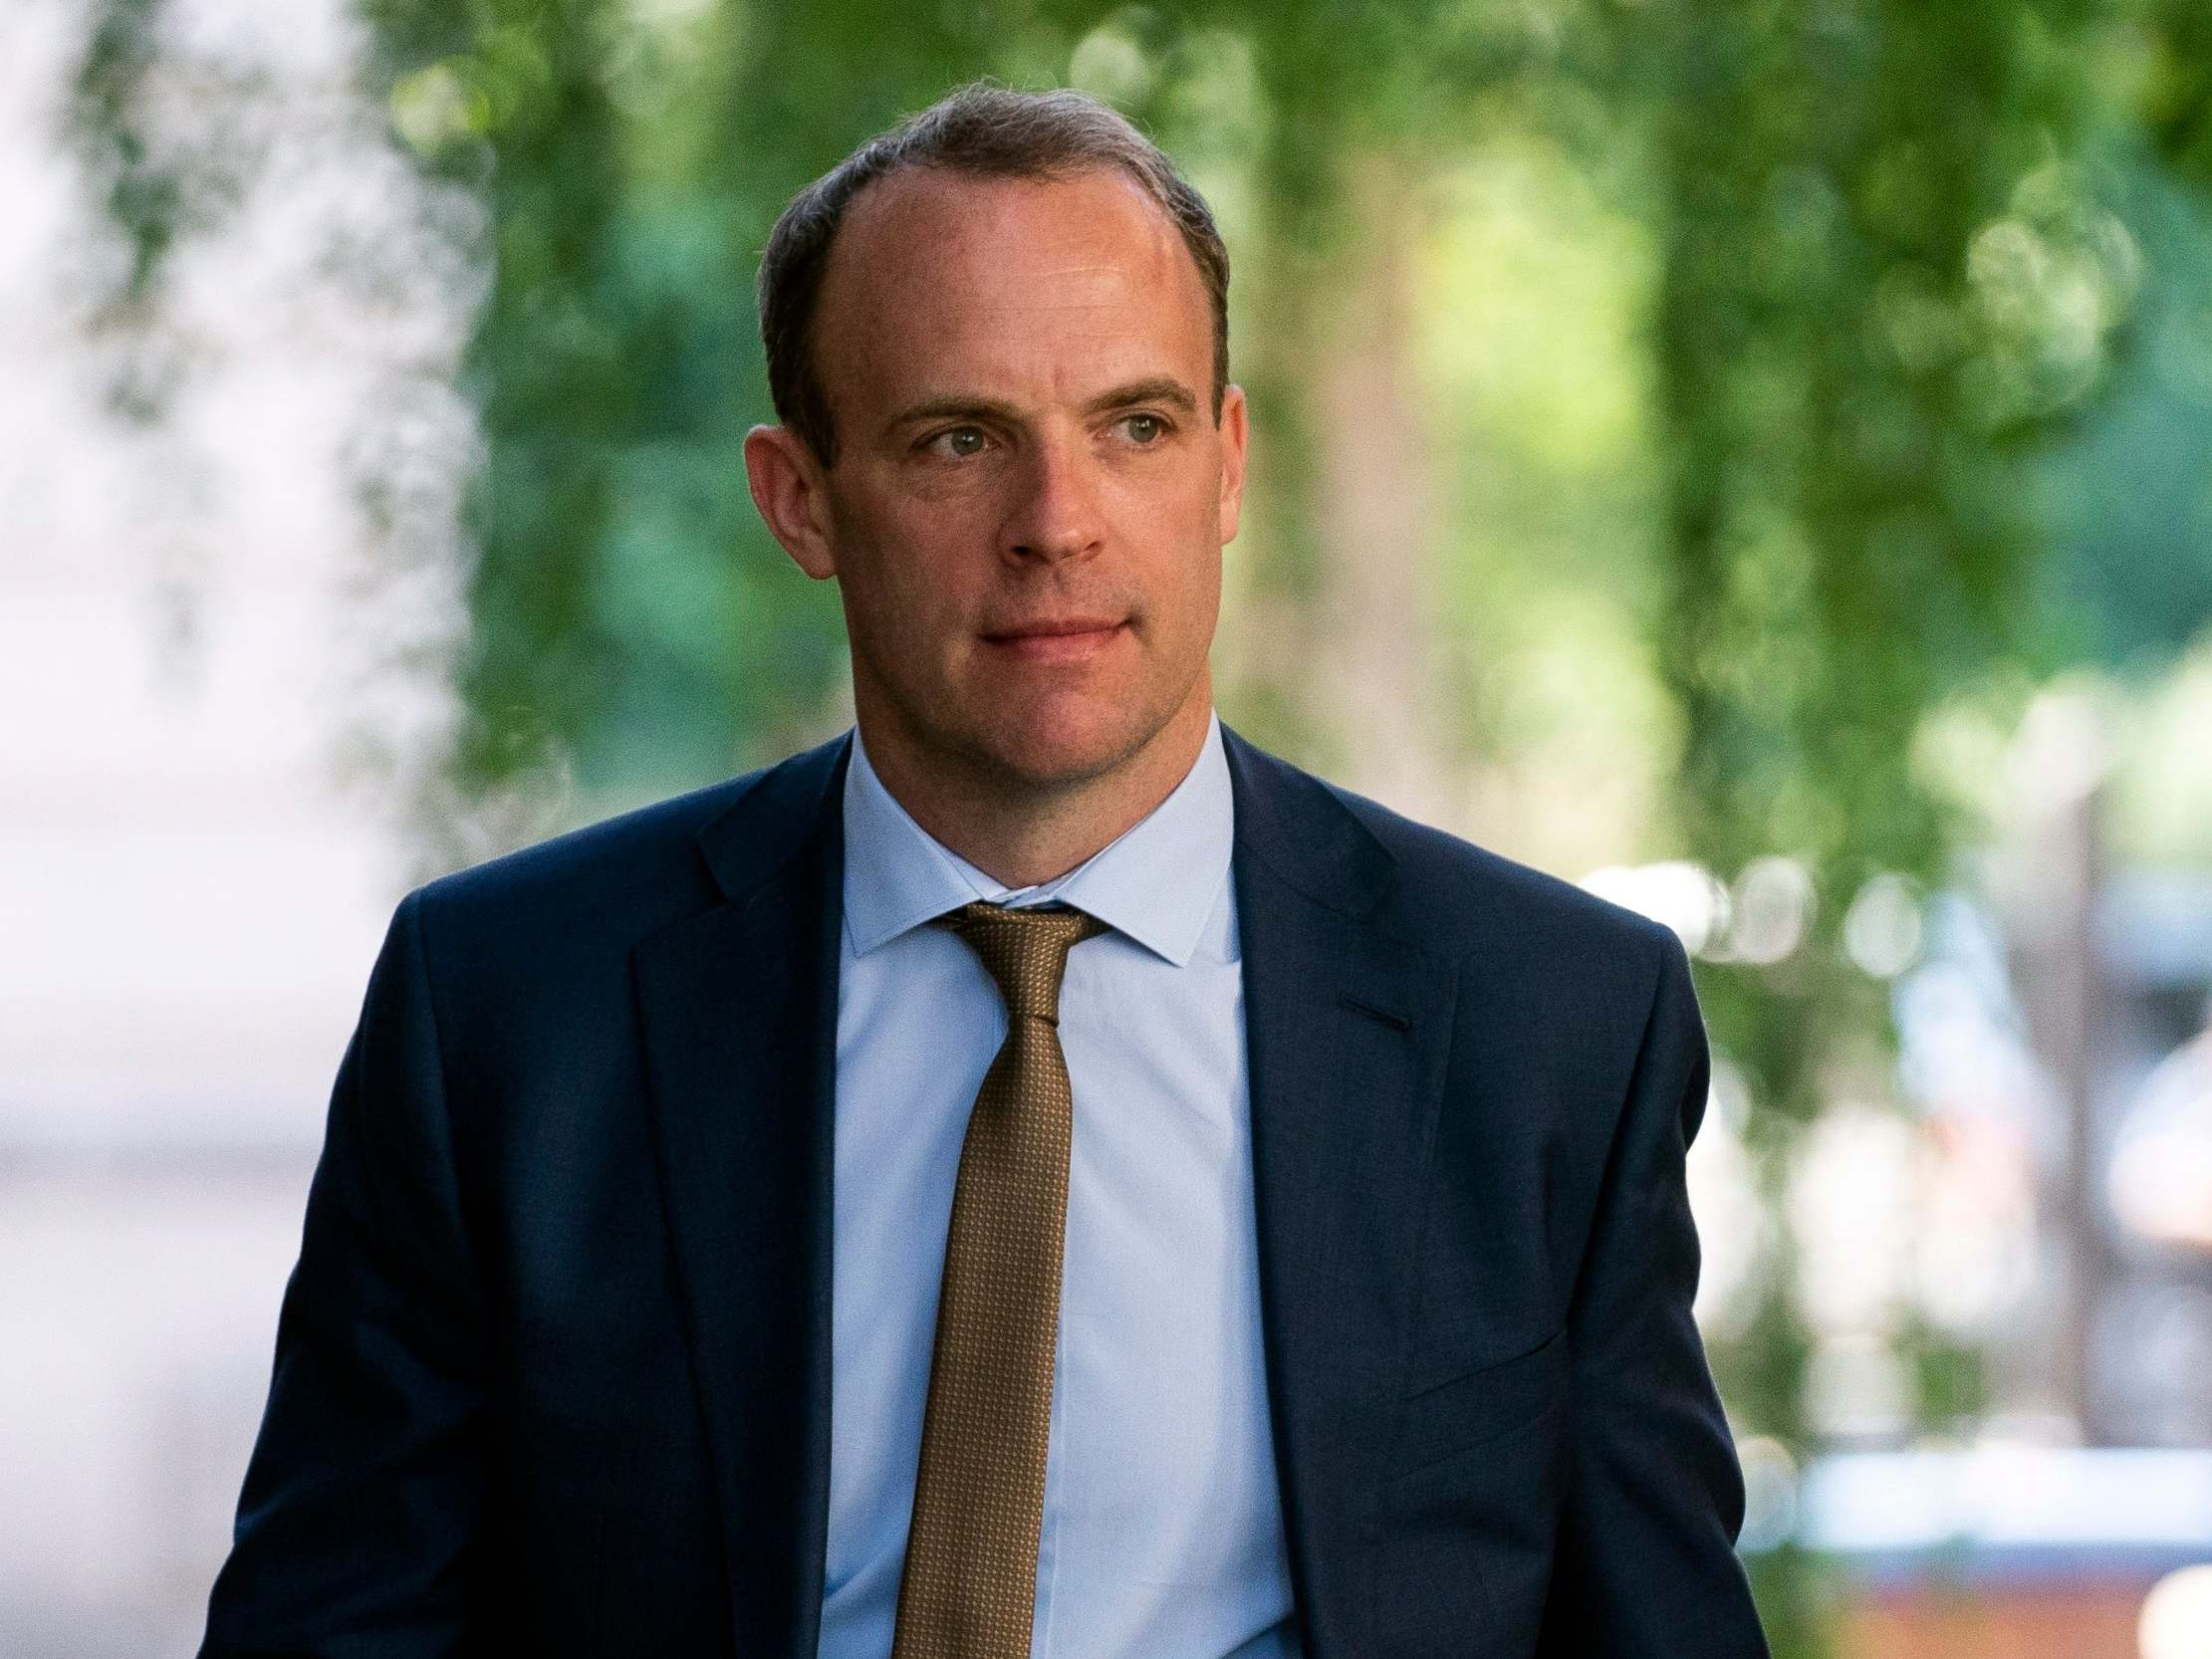 Brexit: Boris Johnson will challenge law stopping no-deal exit in court, Dominic Raab reveals